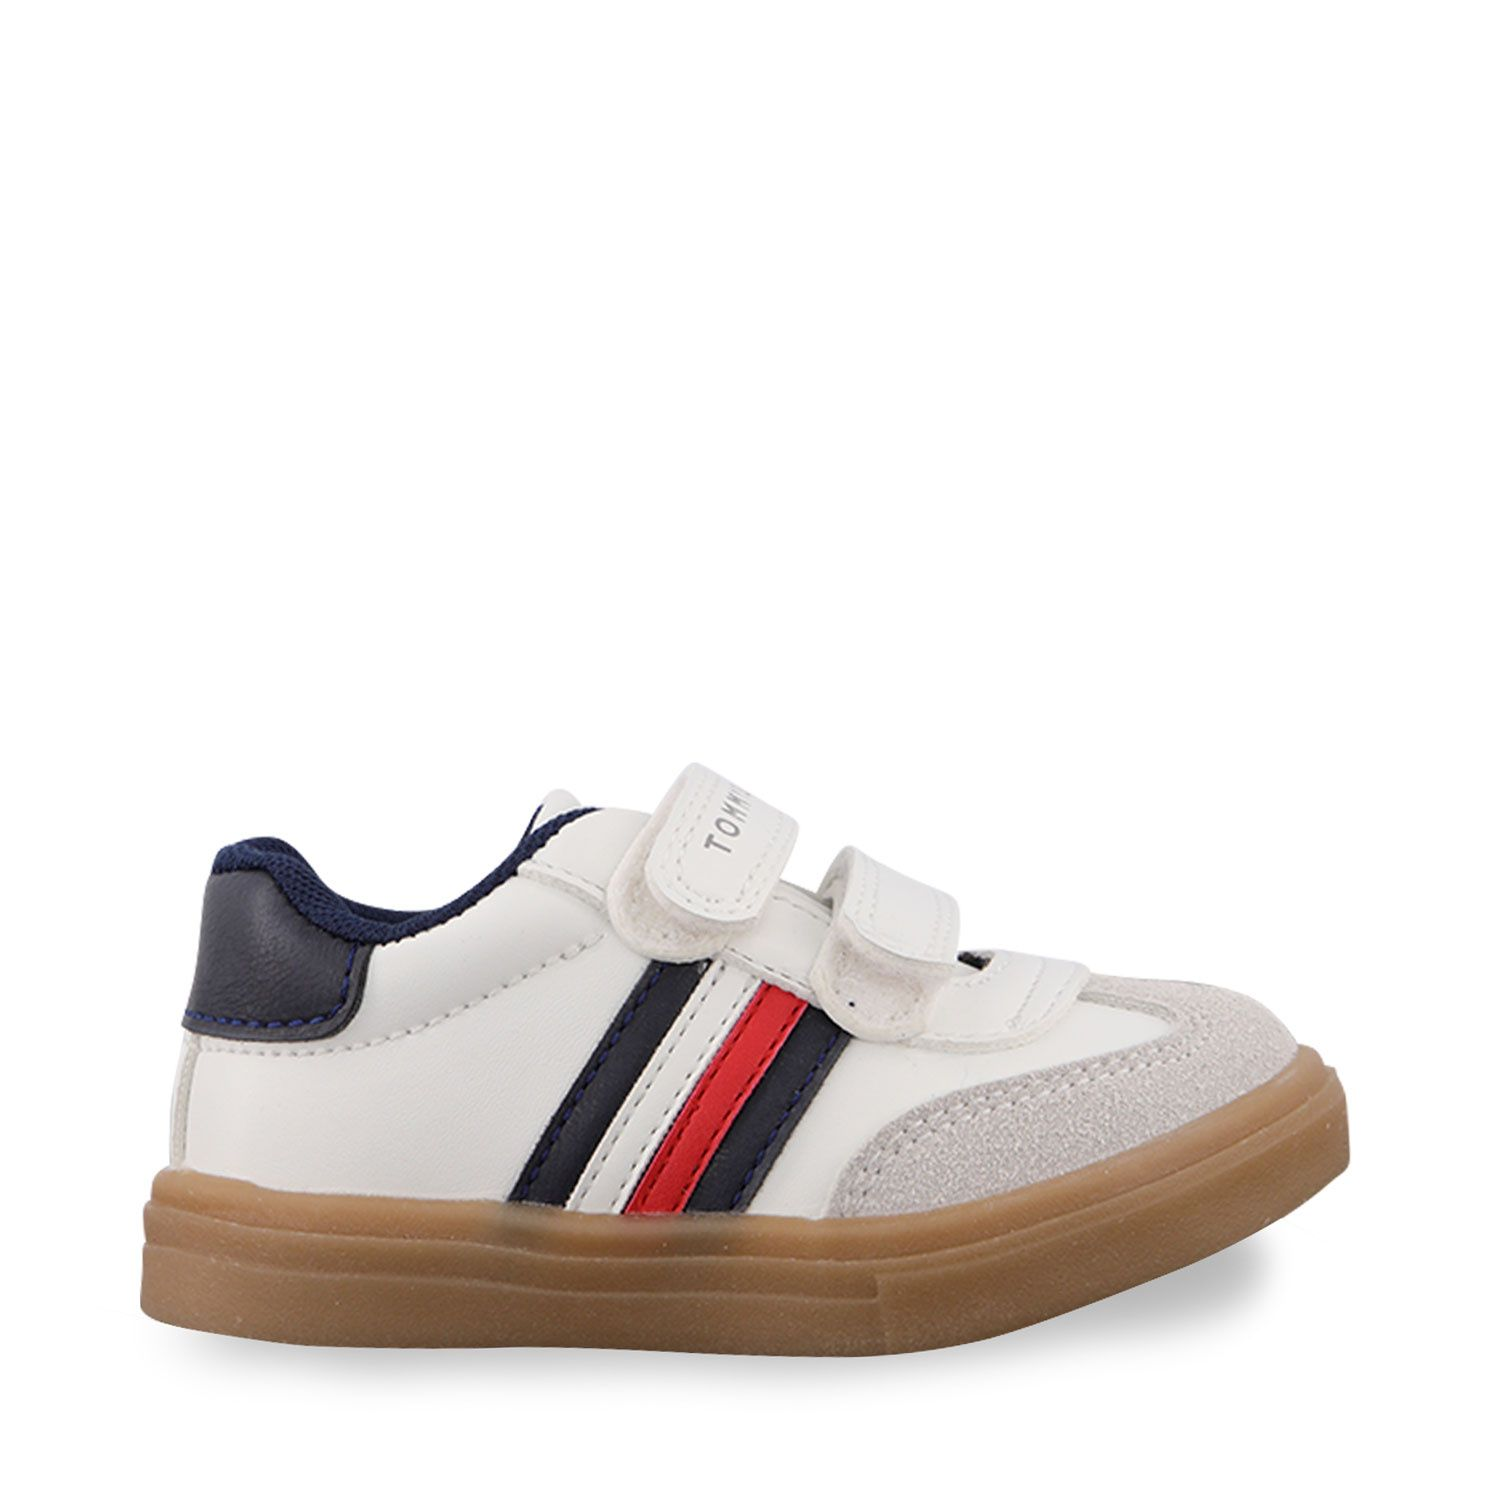 Picture of Tommy Hilfiger 30903 kids sneakers white